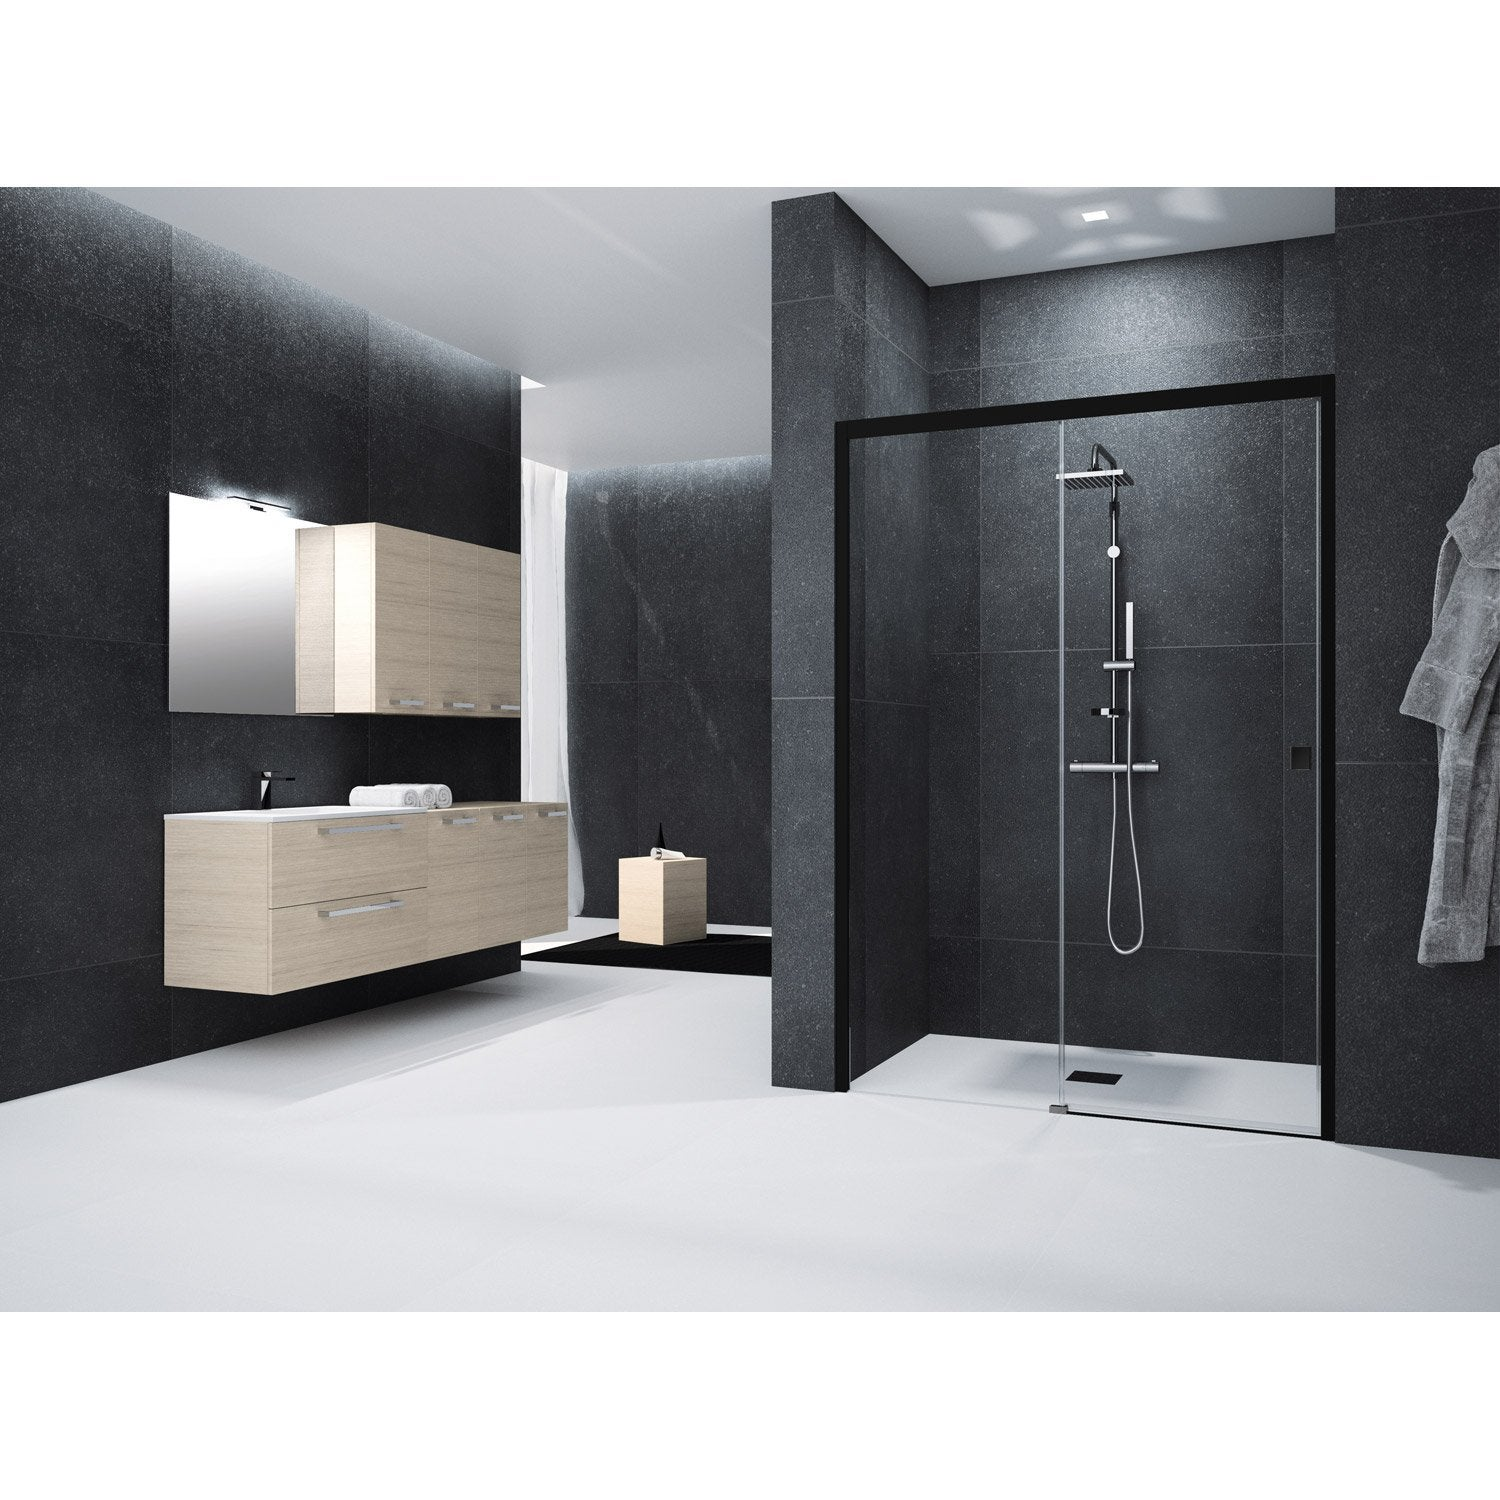 porte de douche coulissante 140 cm transparent neo leroy merlin. Black Bedroom Furniture Sets. Home Design Ideas